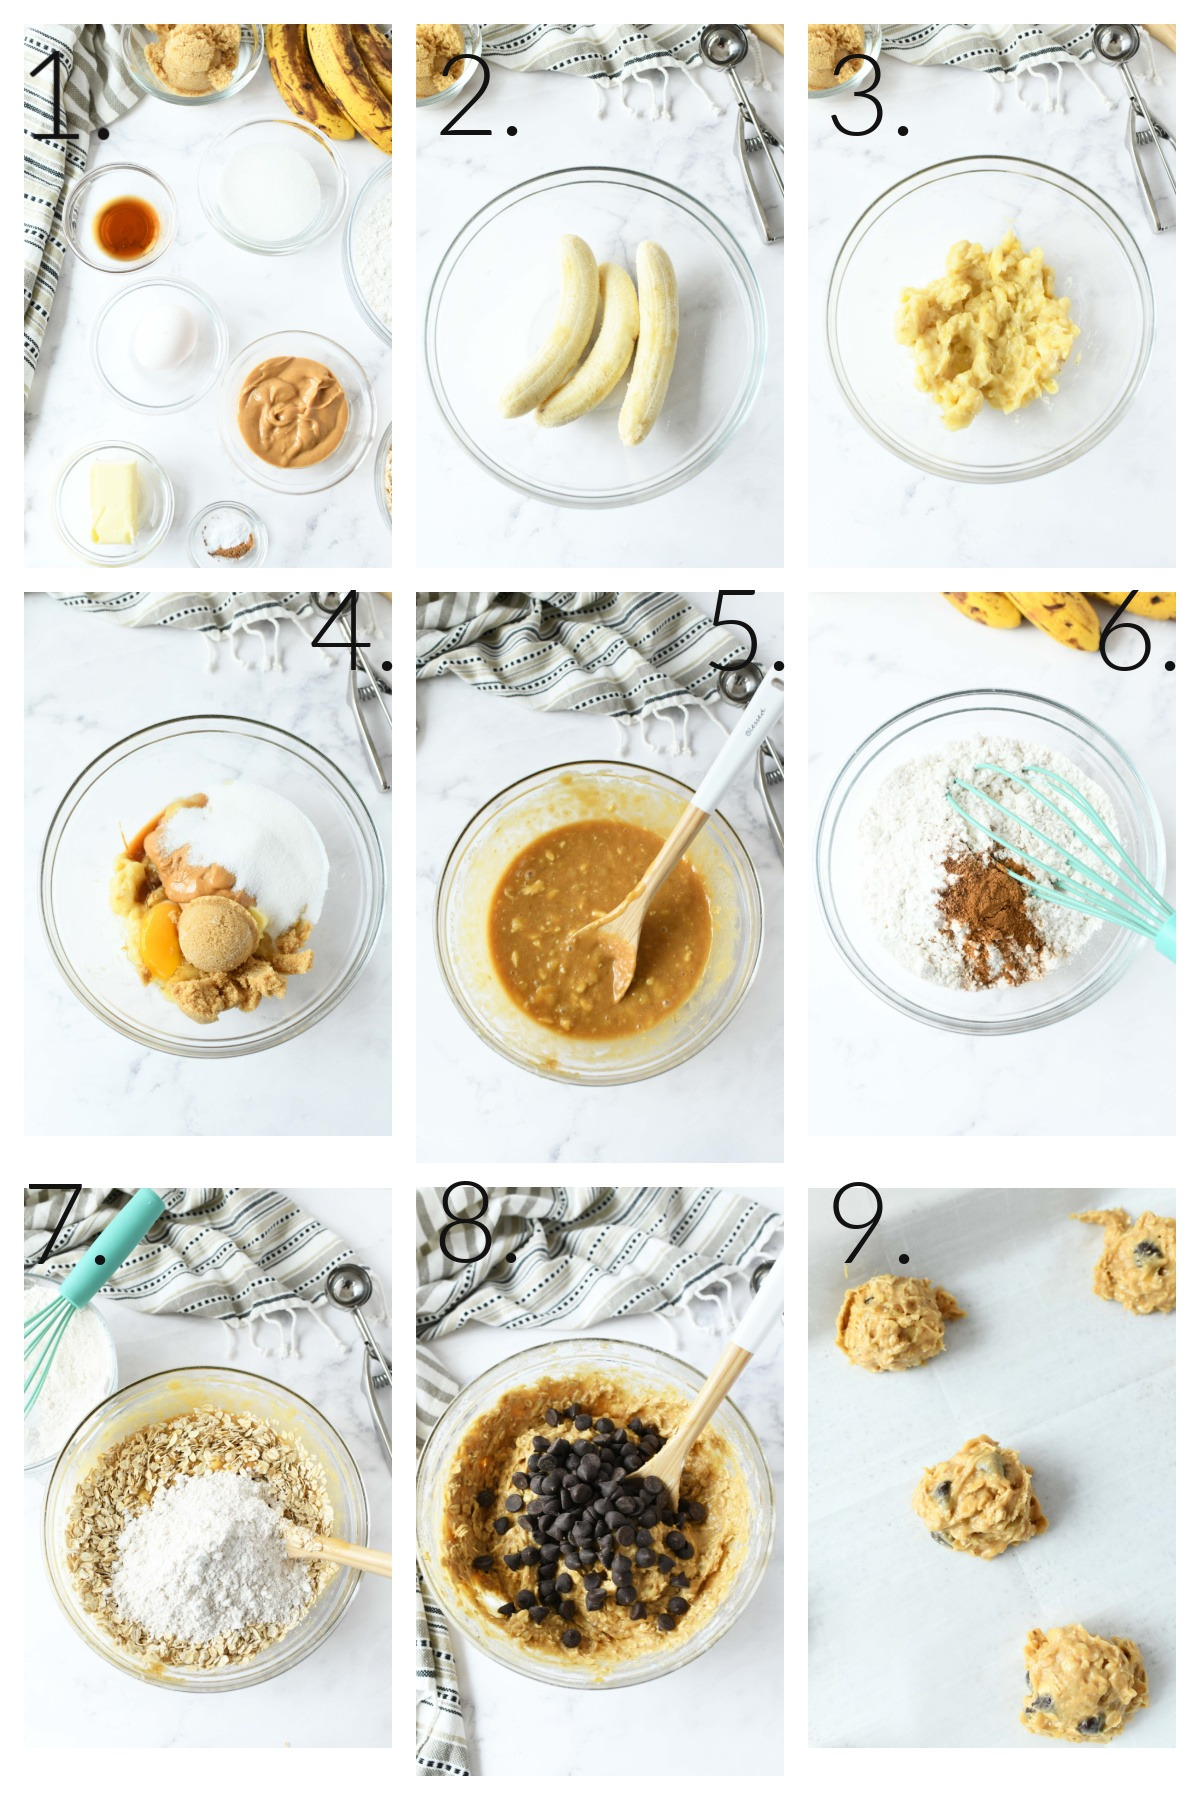 A nine image collage of the steps to make banana cookies in order of making.